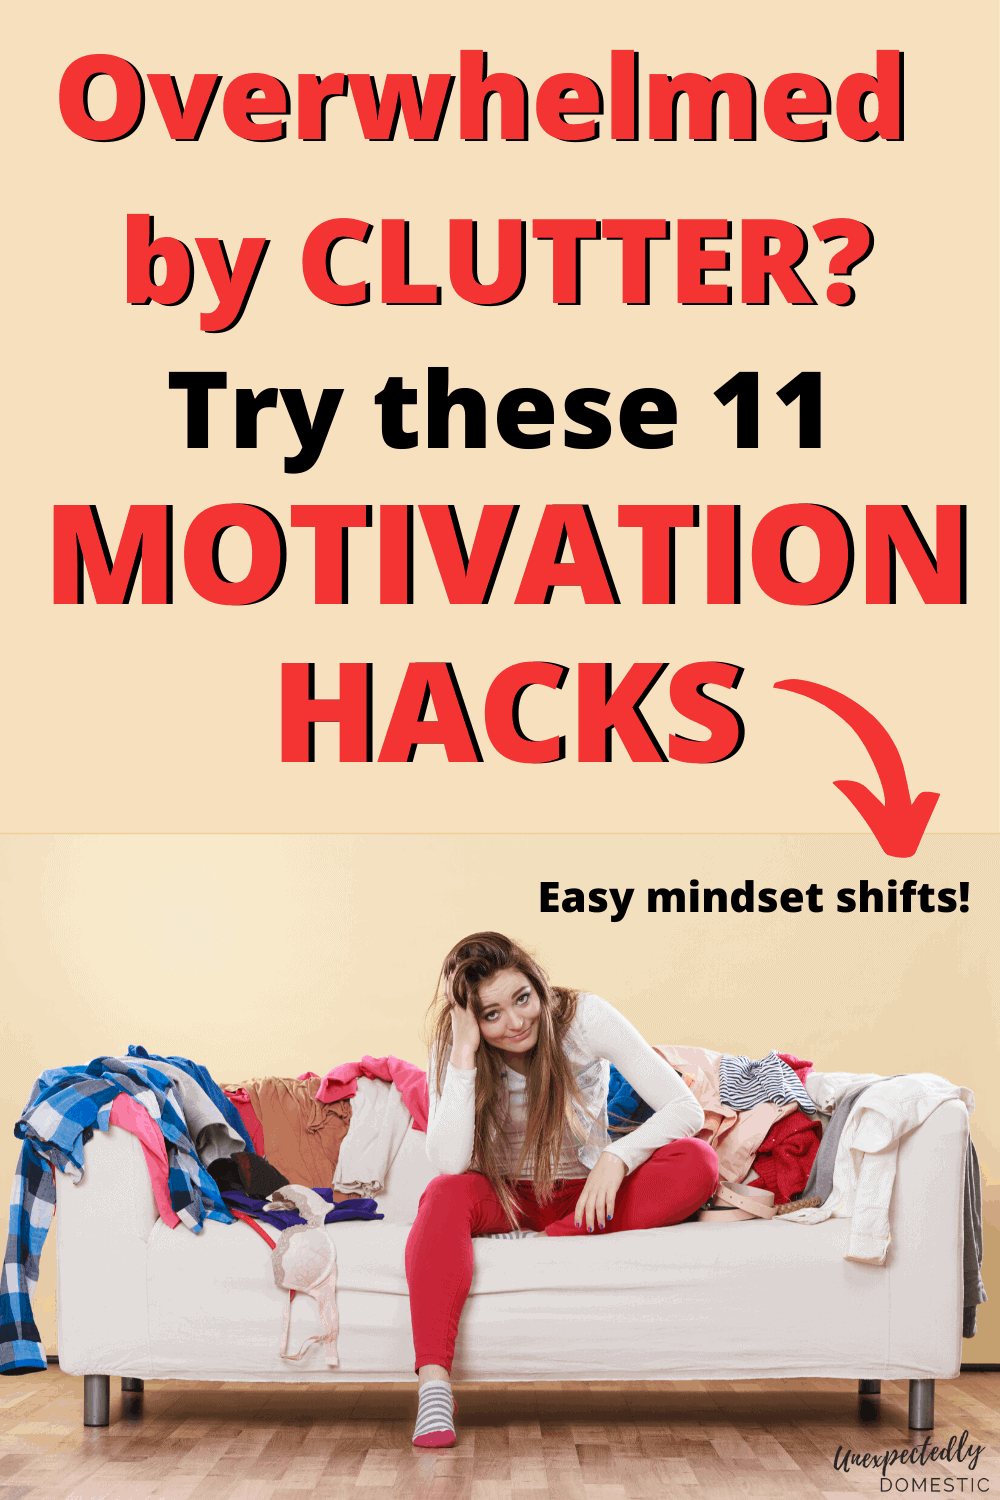 Decluttering motivation tips for tackling clutter and getting organized!How to find the motivation to declutter your homeand get rid of stuff.